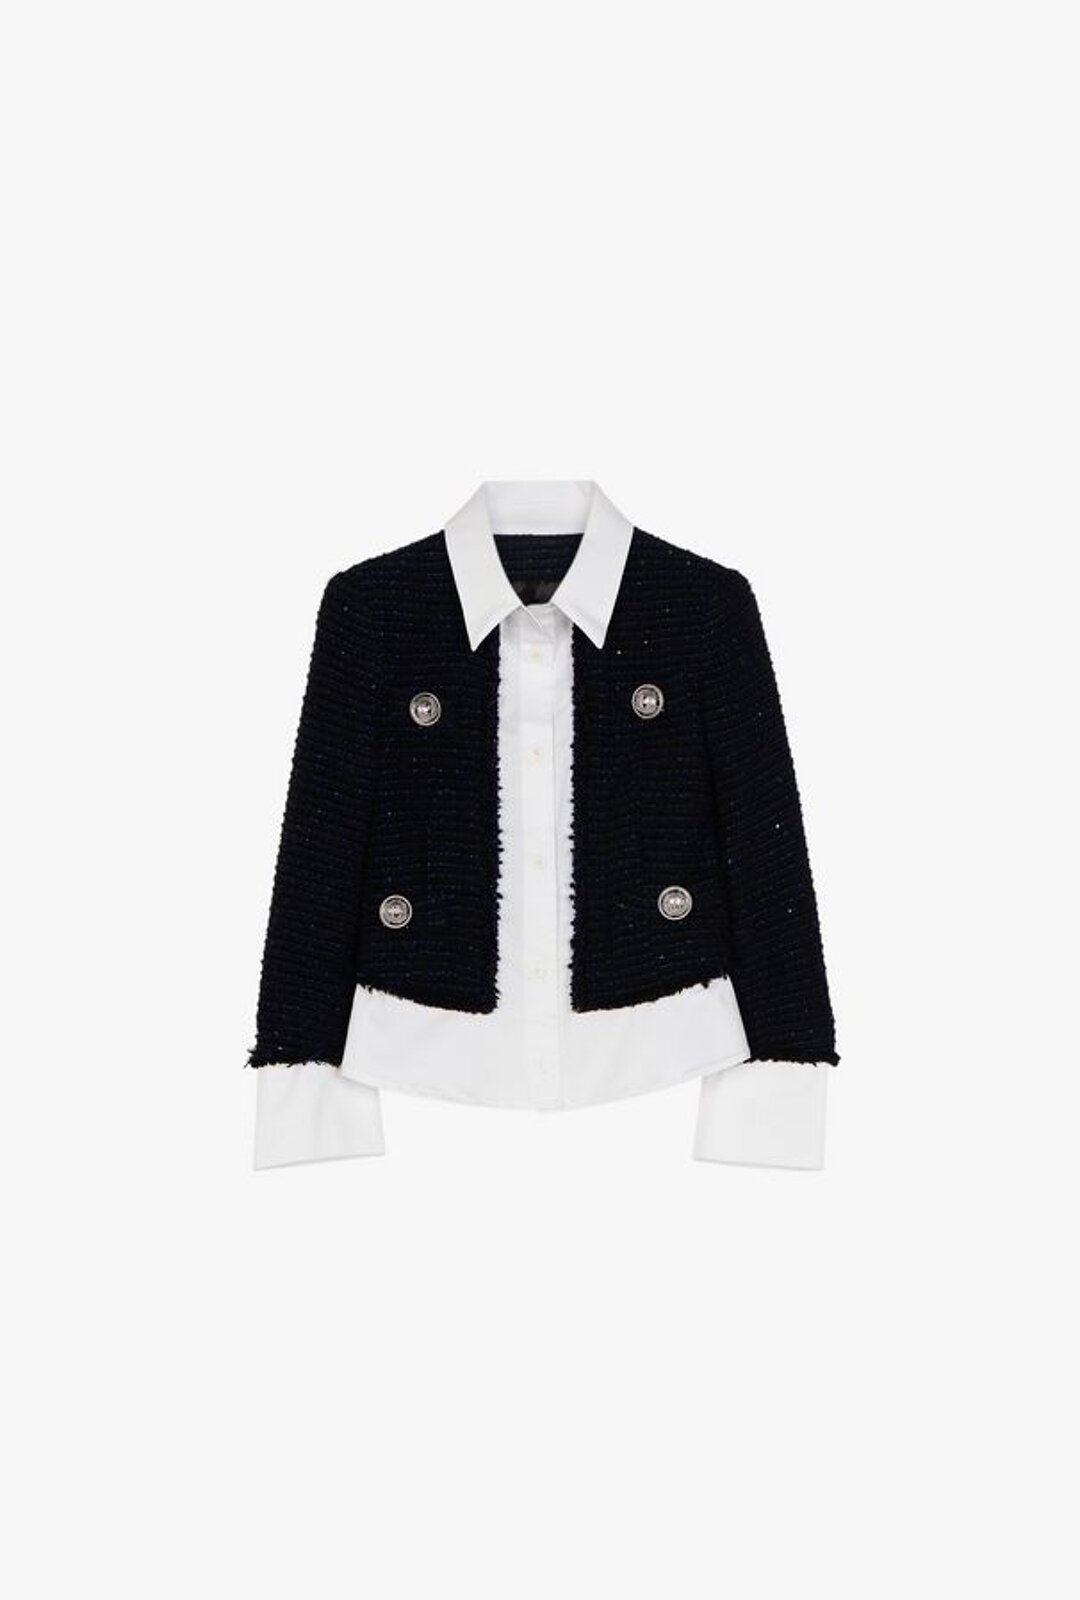 Black And White Shirt Jacket In Tweed - Balmain Junior